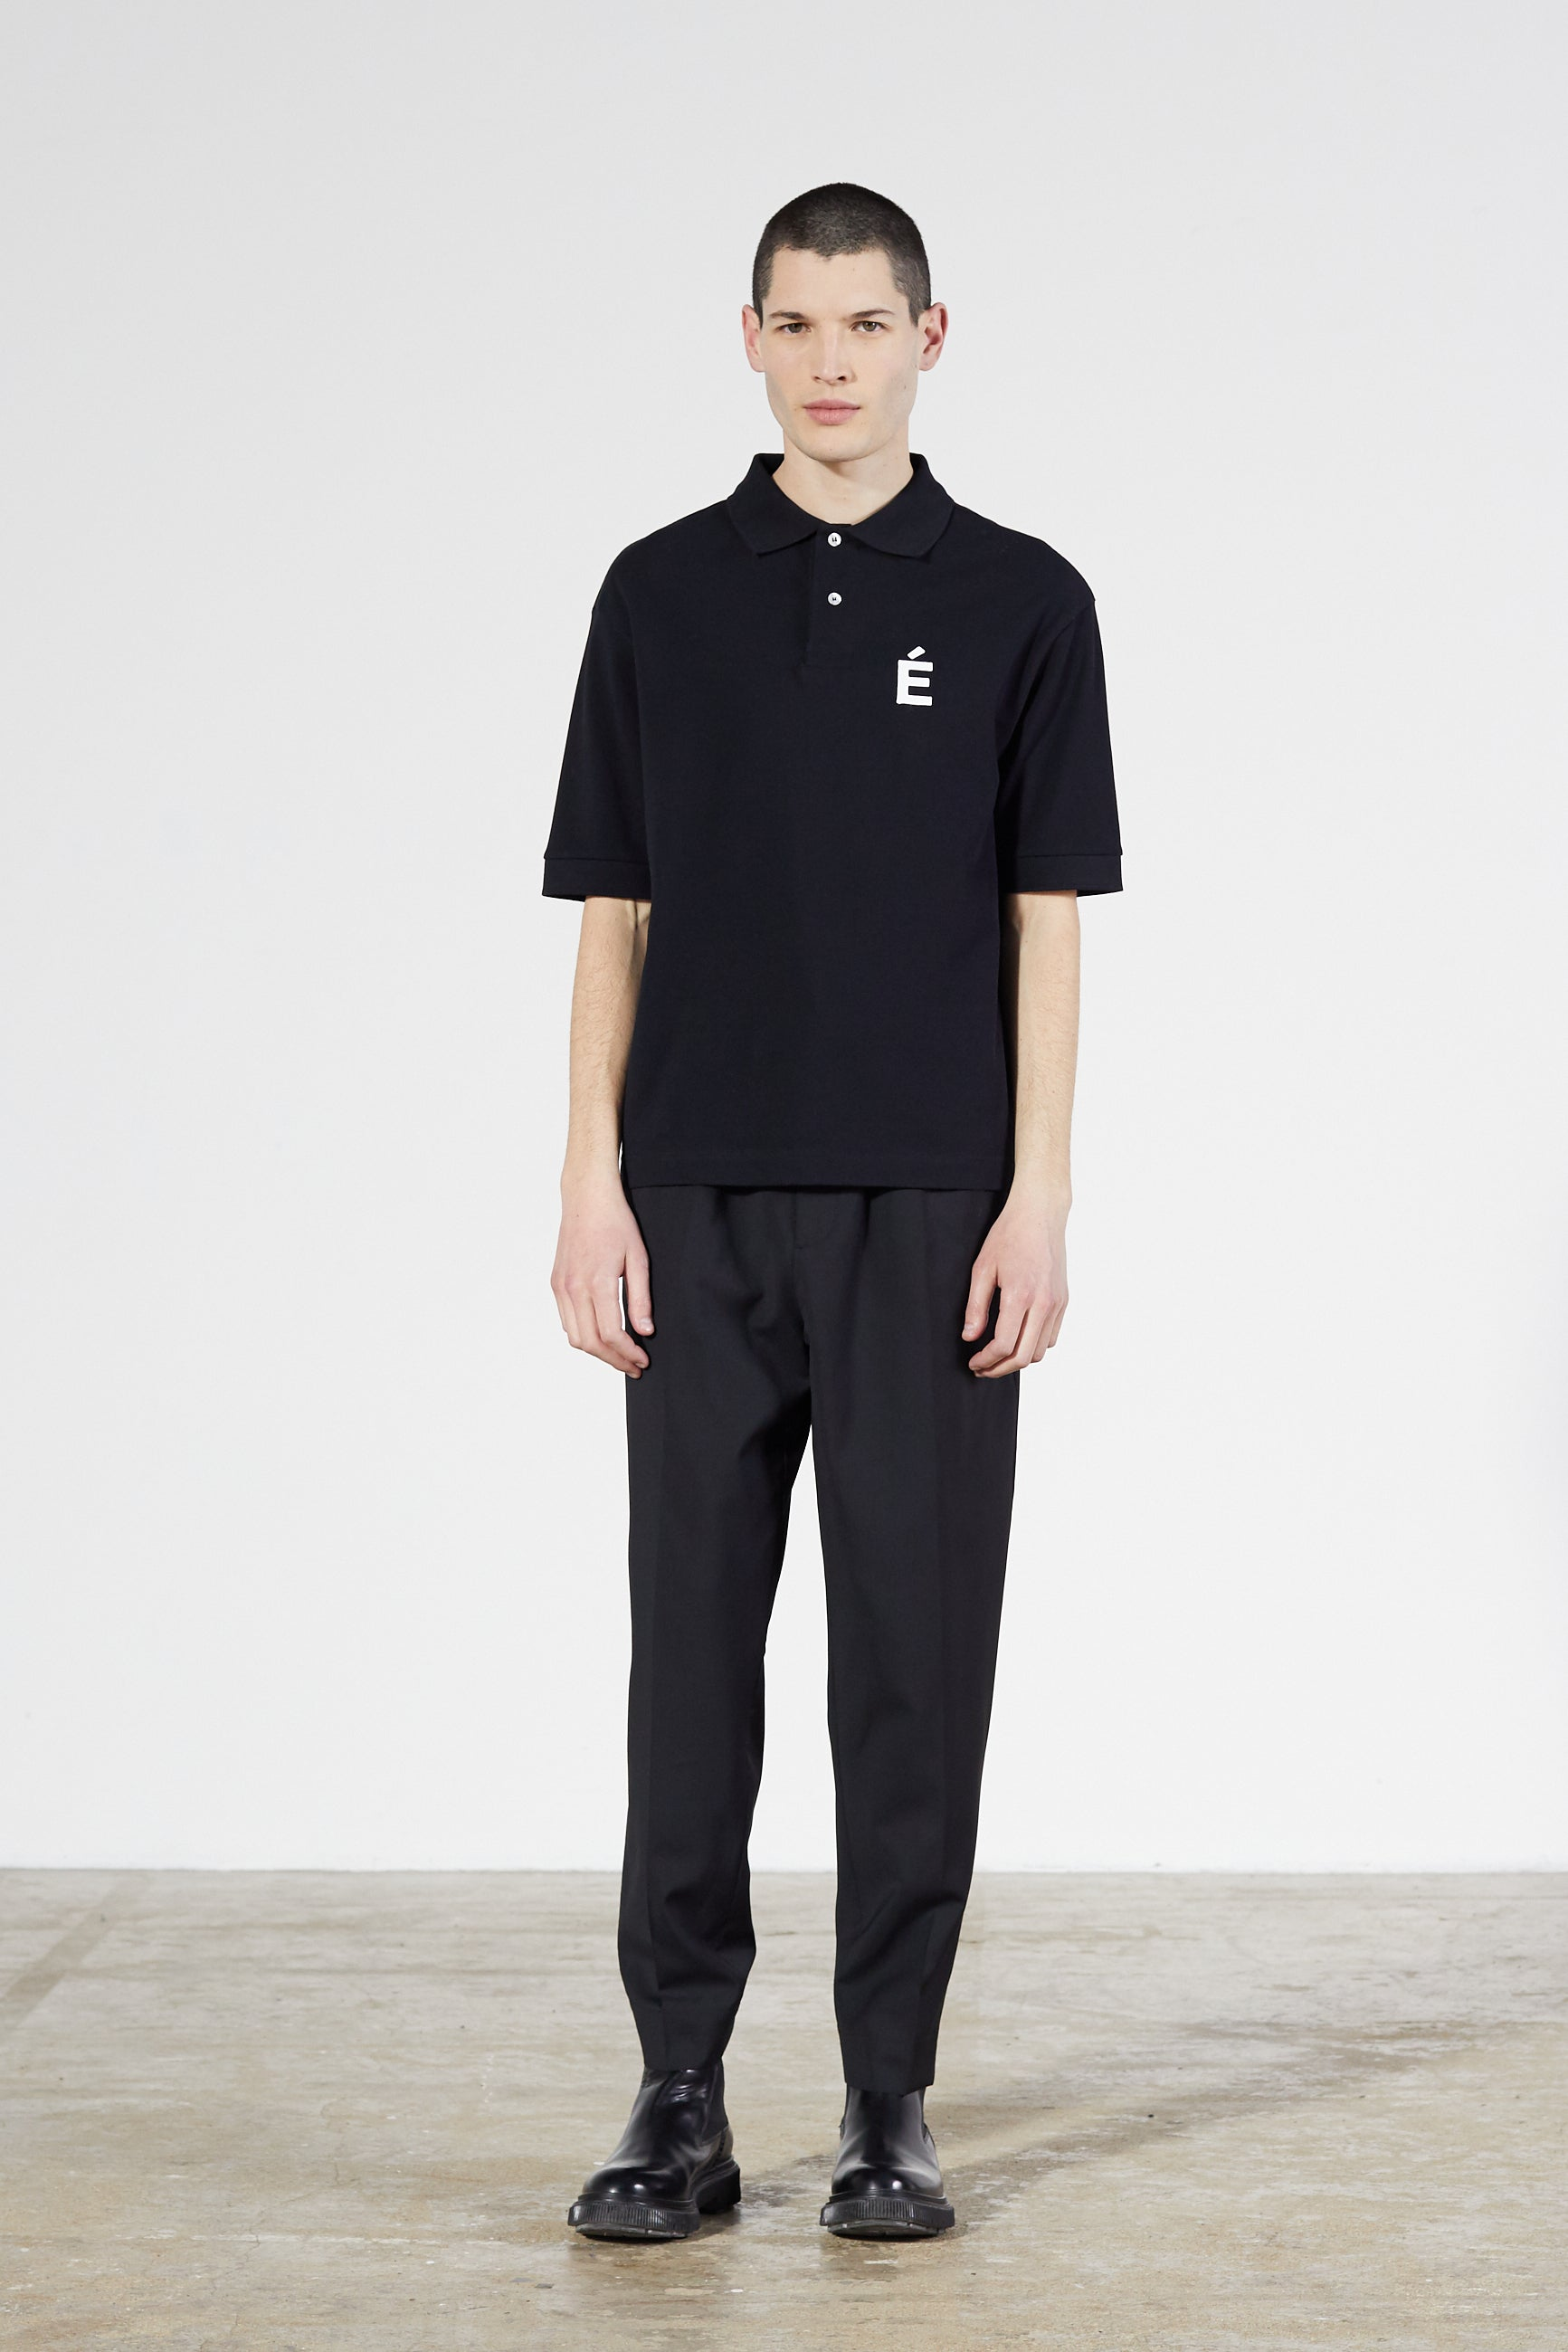 Études Polo Patch Black Jacket 1